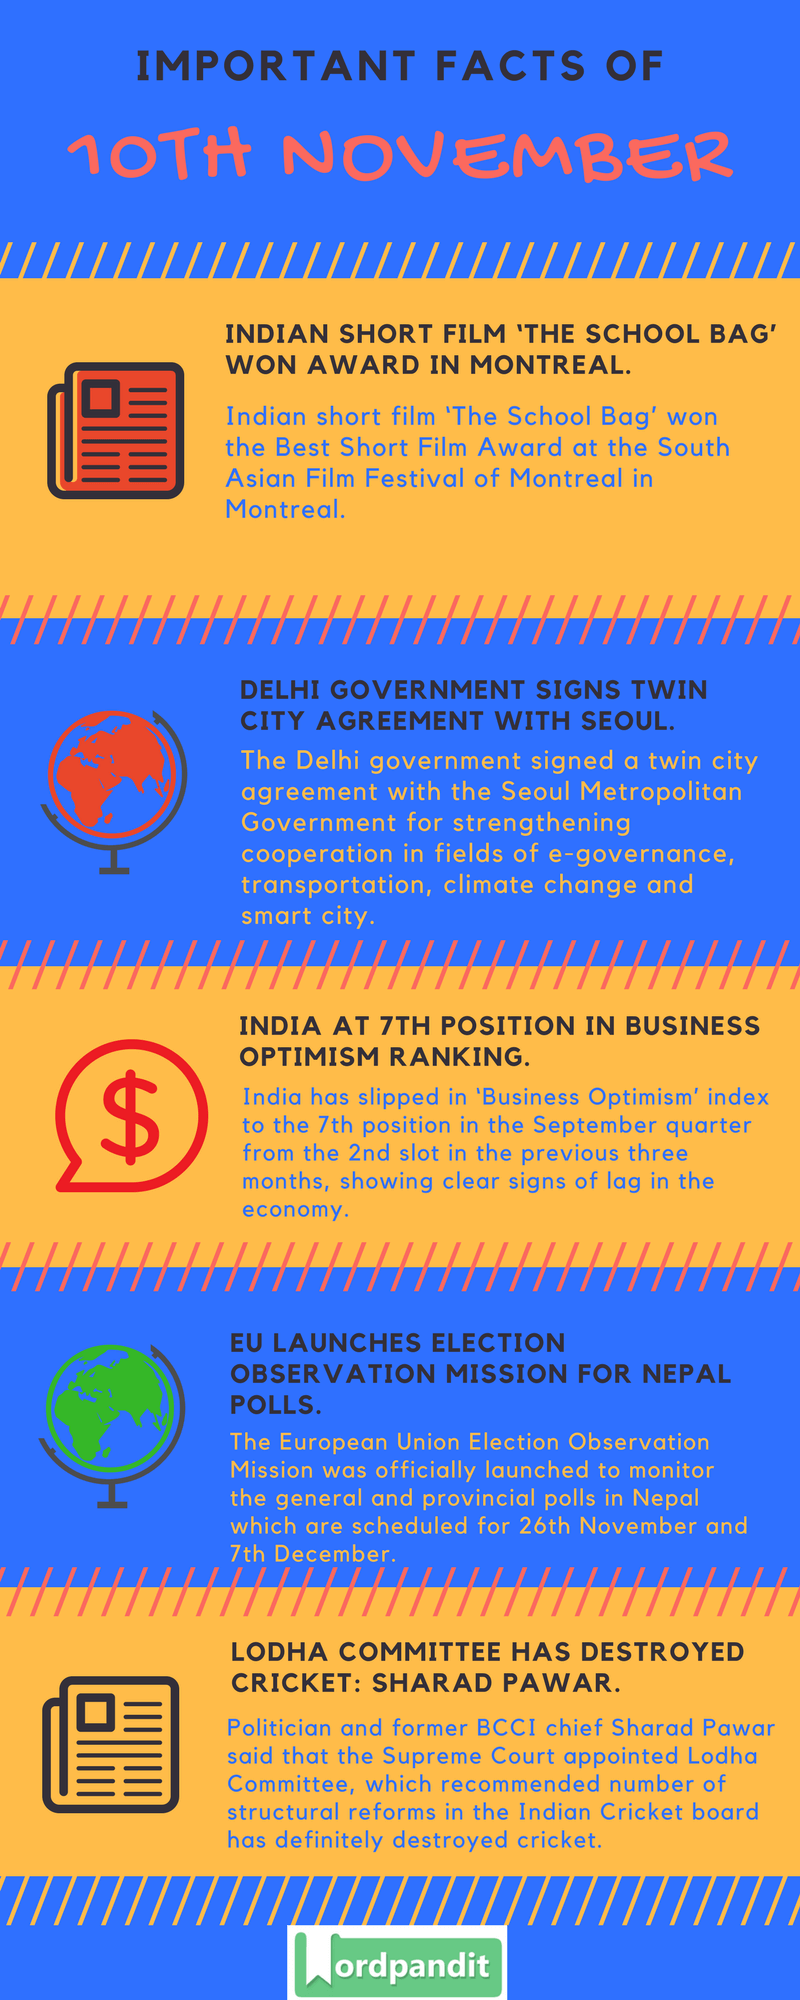 Daily-Current-Affairs-10-november-2017-Current-Affairs-Quiz-november-10-2017-Current-Affairs-Infographic